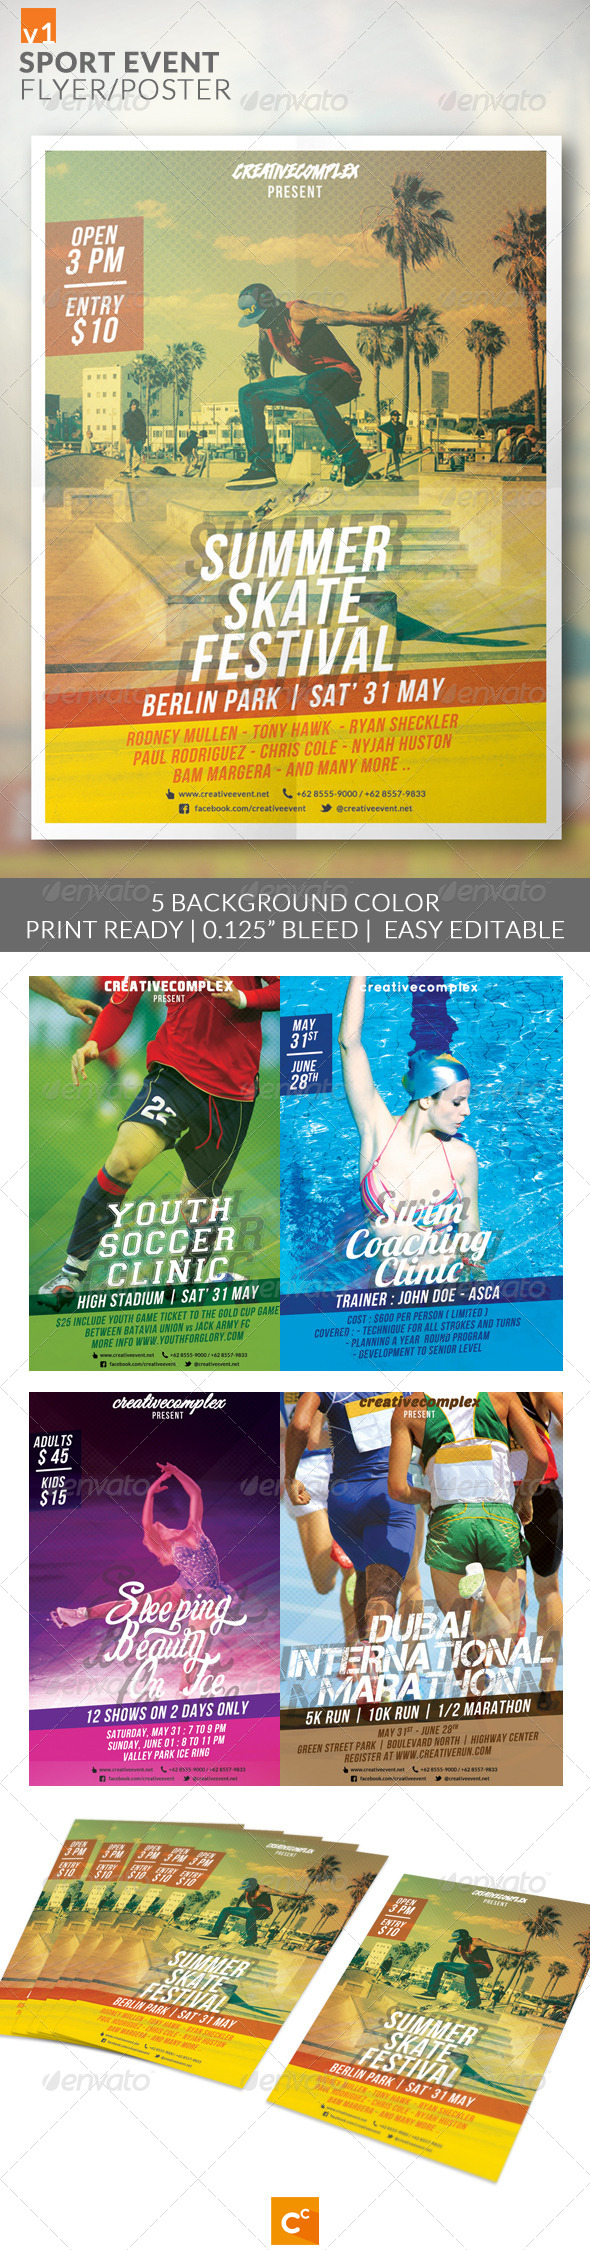 GraphicRiver Sport Event Flyer Poster 7905446